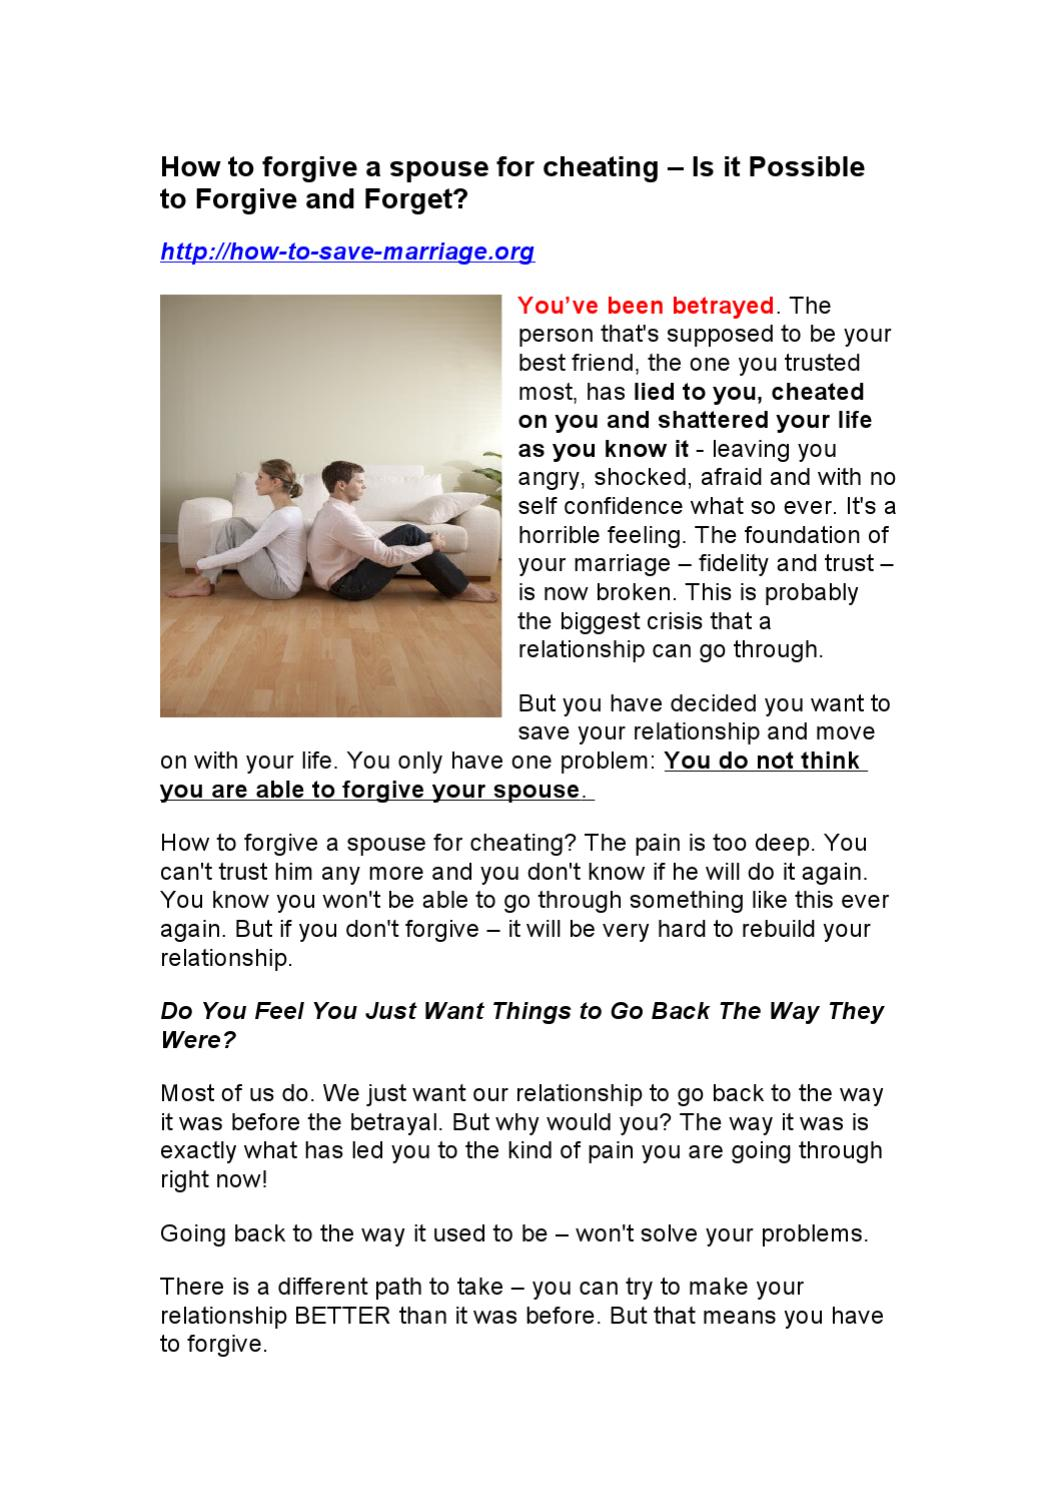 How to forgive a spouse for cheating – Is it Possible to